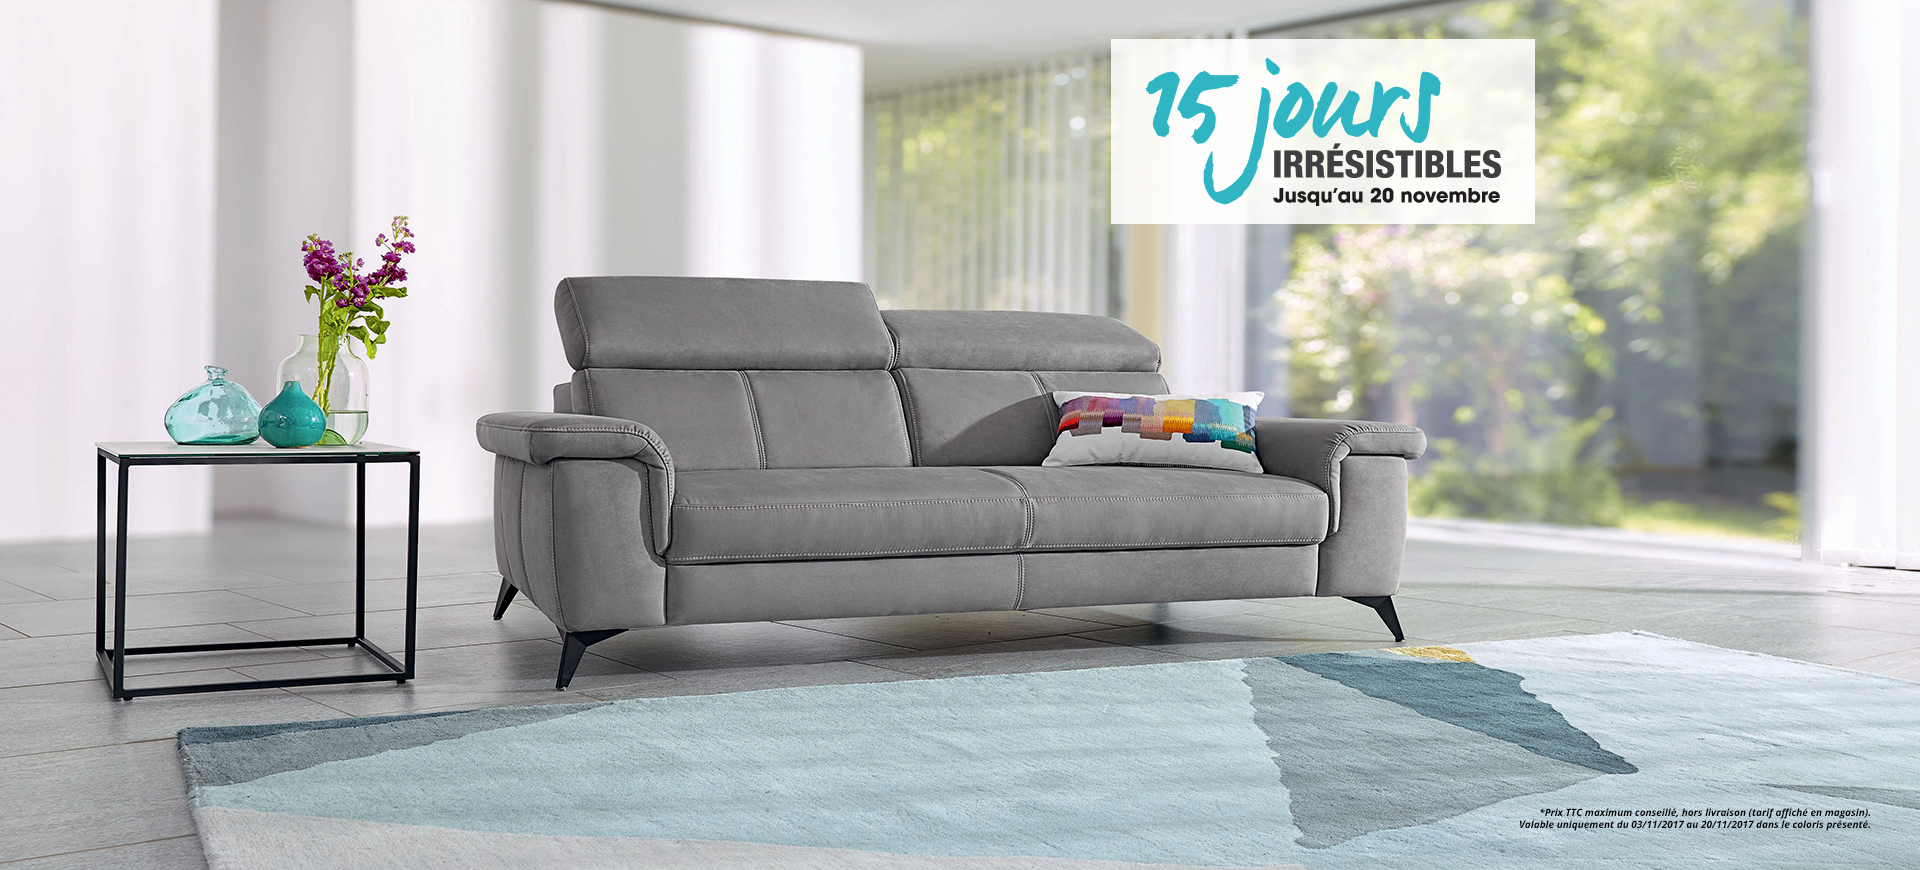 Cuir Center soldes 2017 Beau Image Fauteuil Relax Cuir Center élégant Cuir Center Alba Canapé